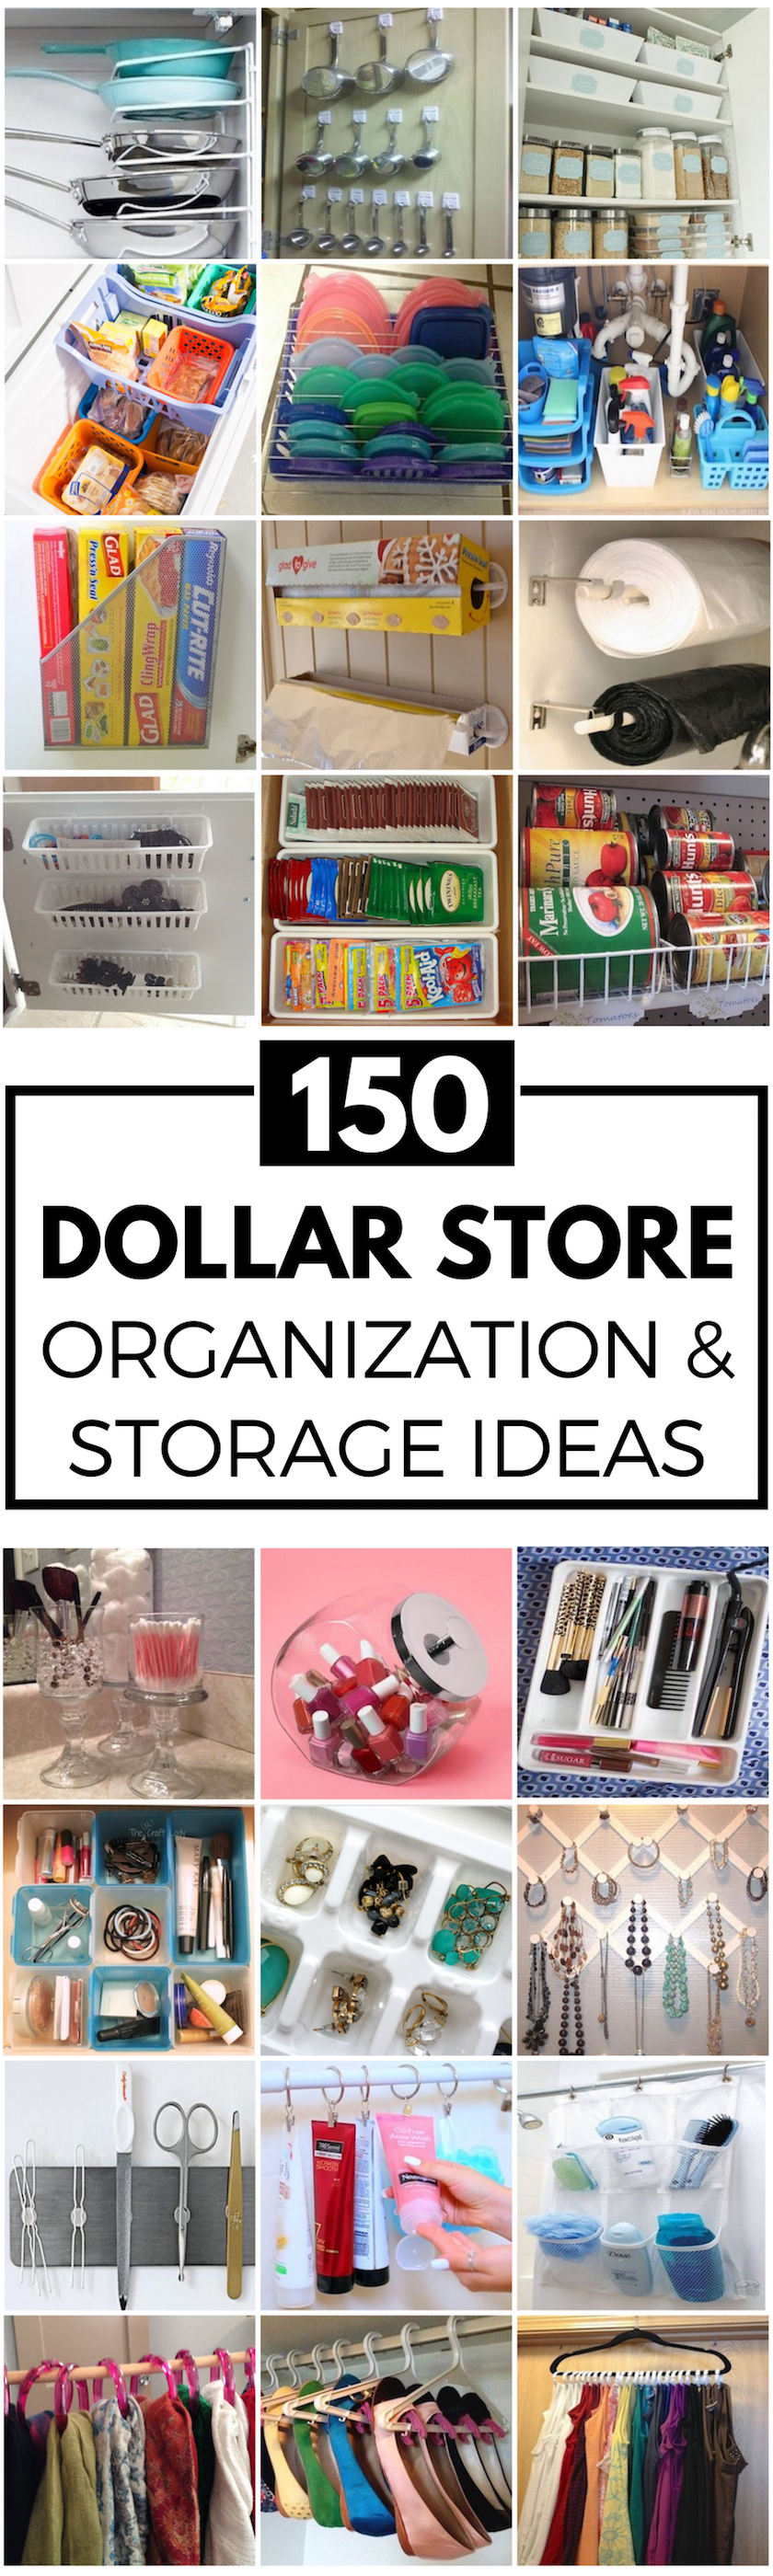 150 DIY Dollar Store Organization and Storage Ideas | Dollar store ...